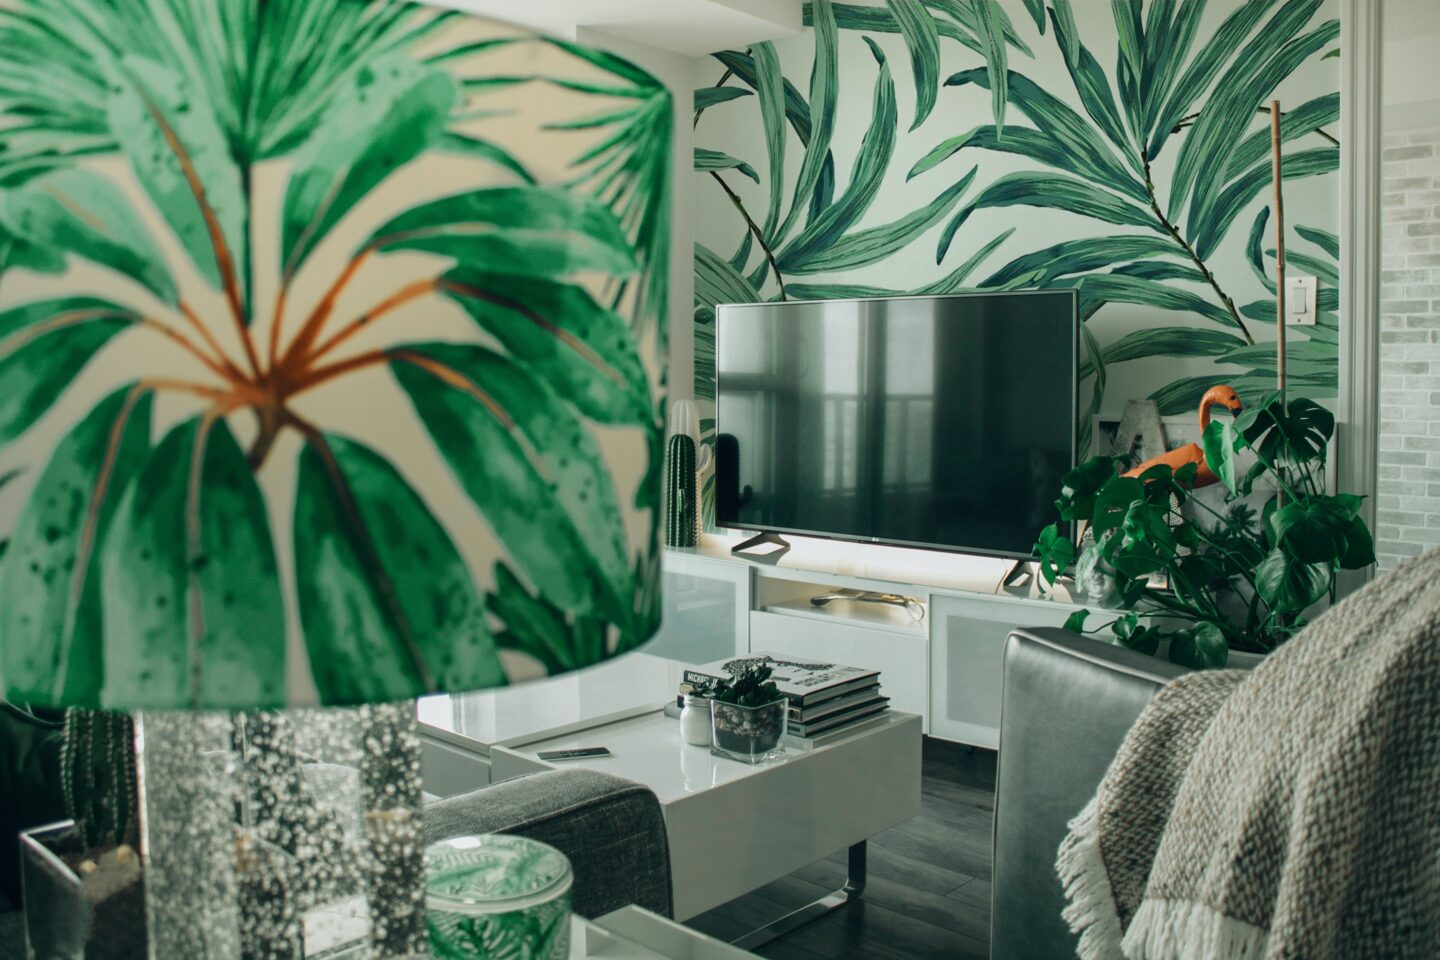 Sprucing Up Your Home for Summer 2021